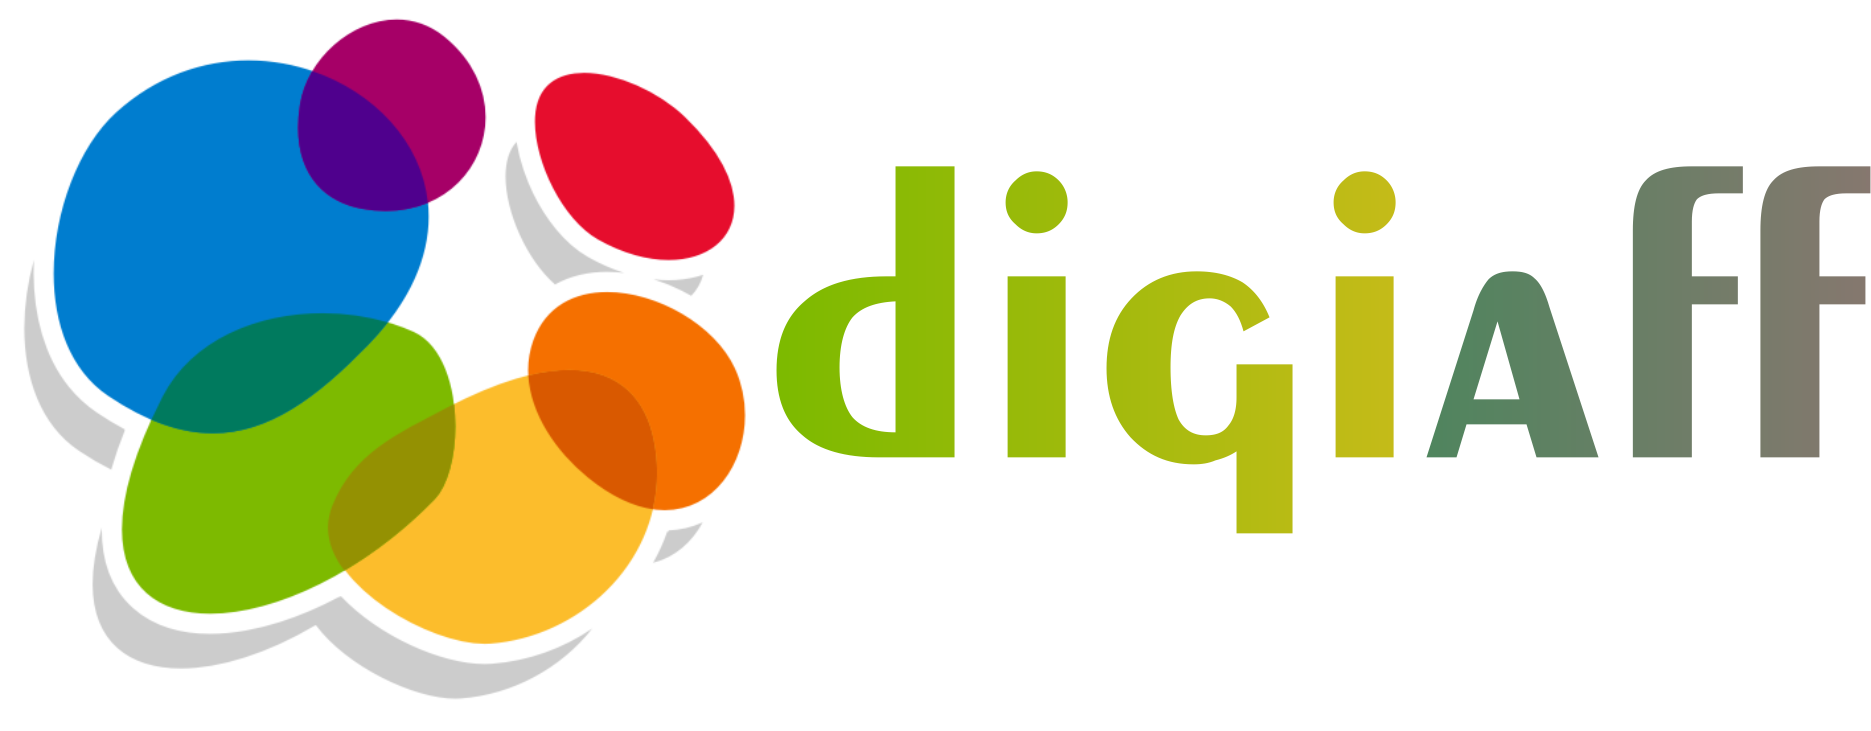 DigiAff | Data-Driven | Web Development | Digital Marketing